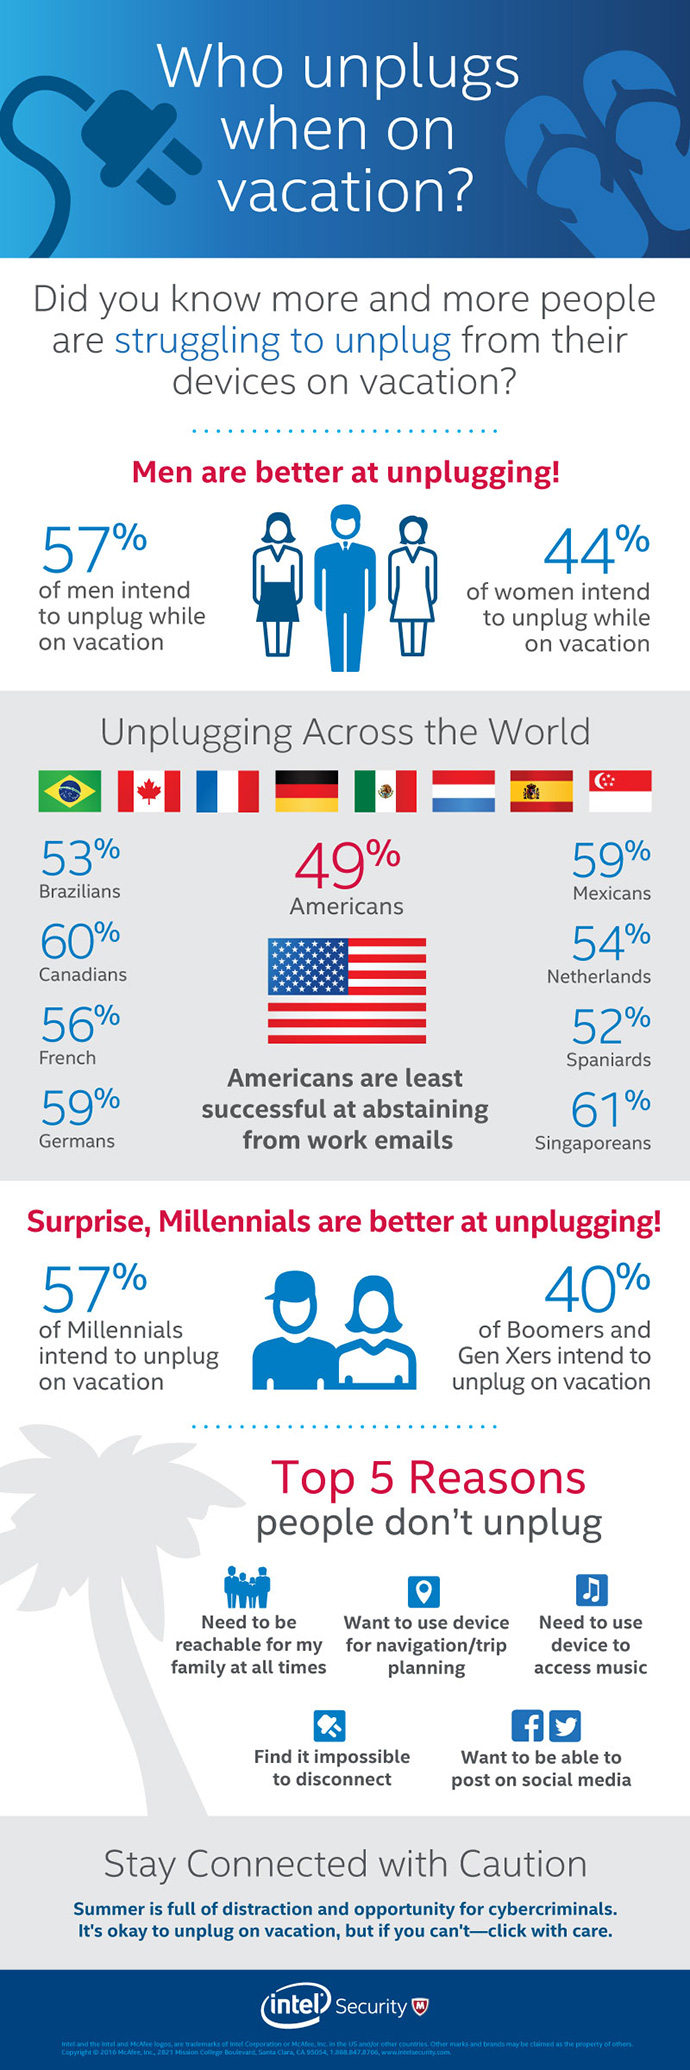 milennials-unplugged-vacation-infographic